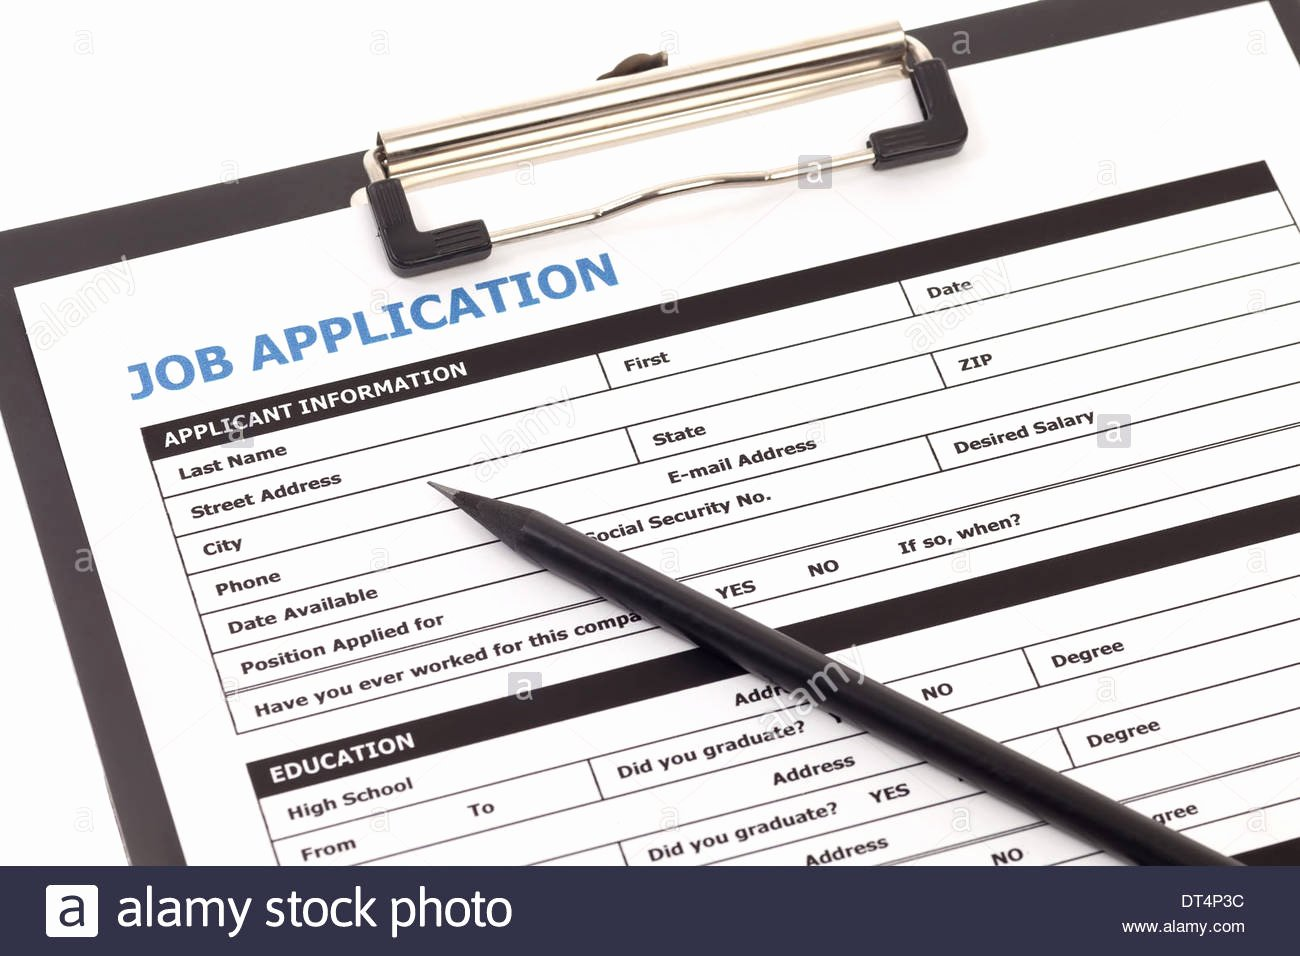 stock photo job application form with pencil isolated on white background